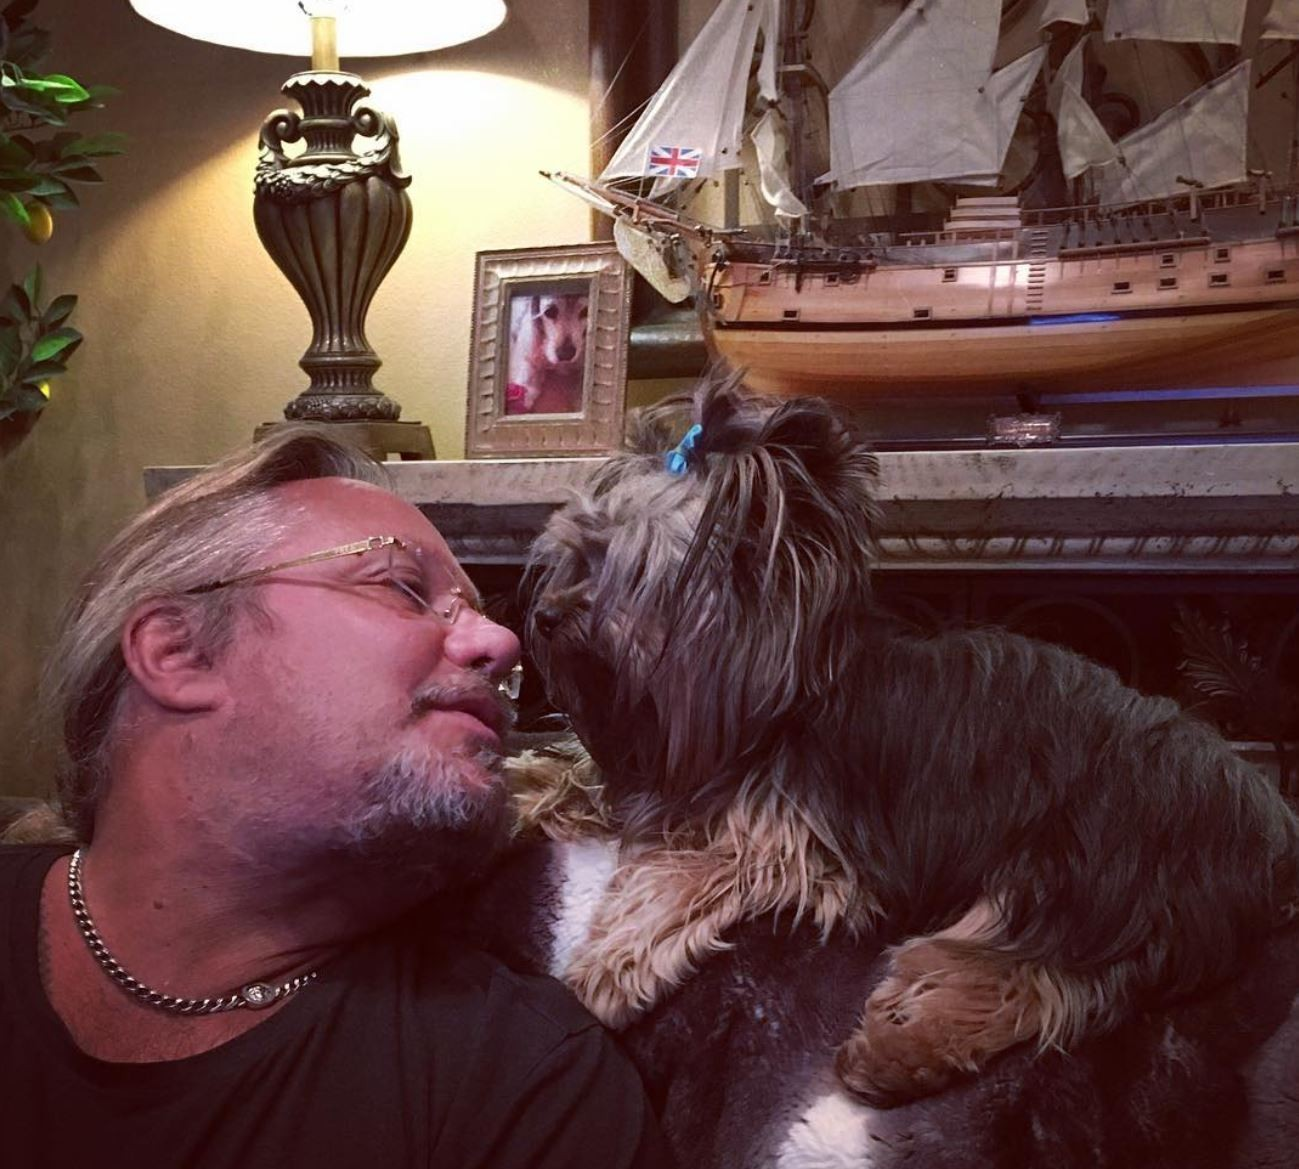 Vince Neil and his dog